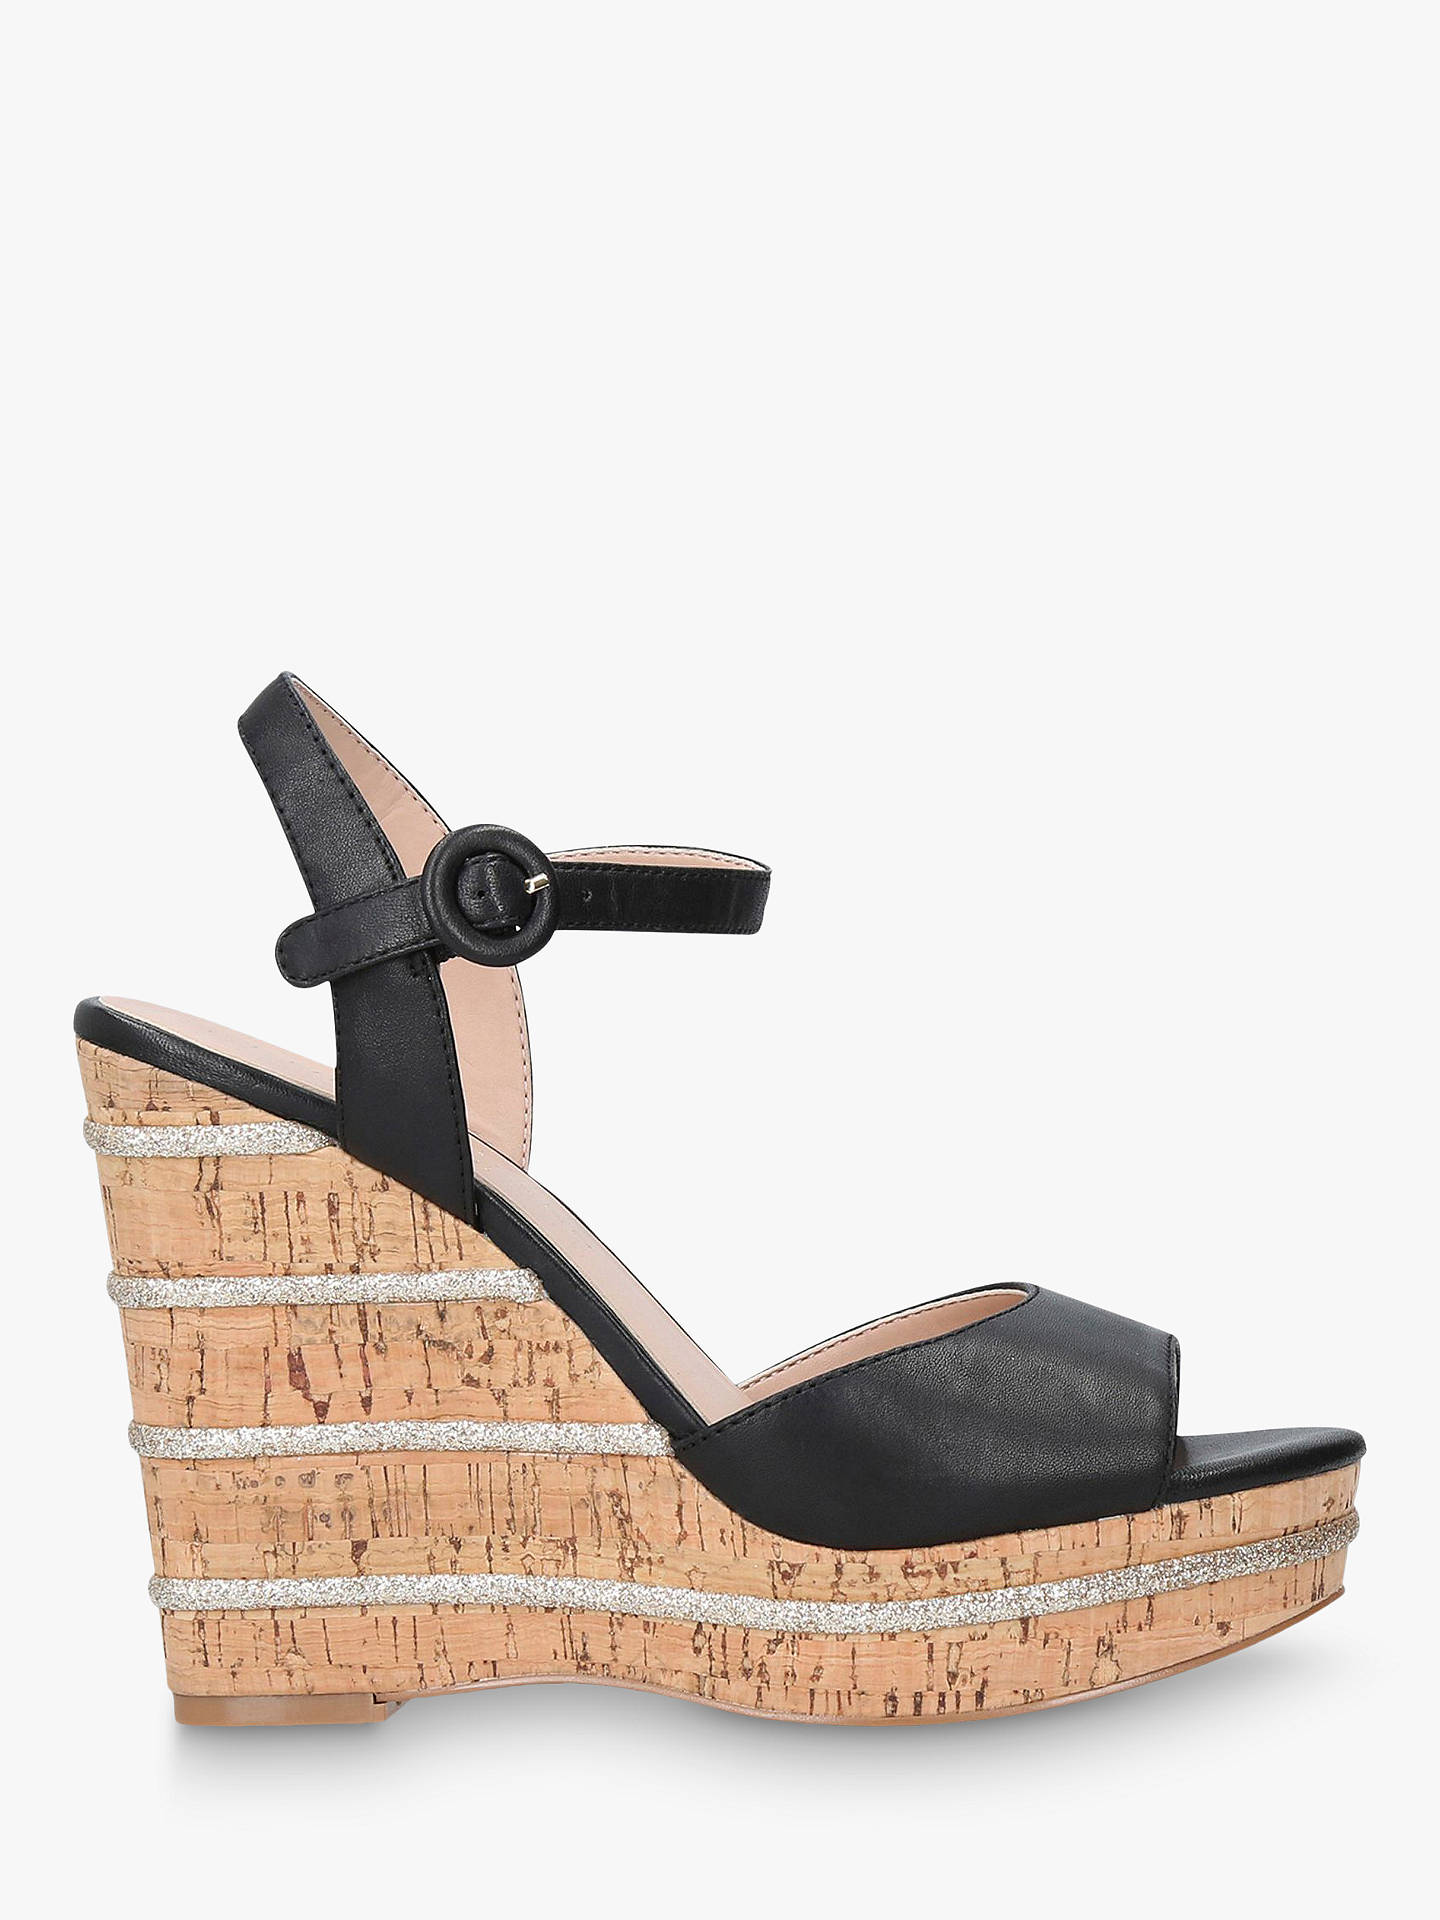 outlet for sale better price usa cheap sale Kurt Geiger London Ally Wedge Heel Sandals, Black Leather